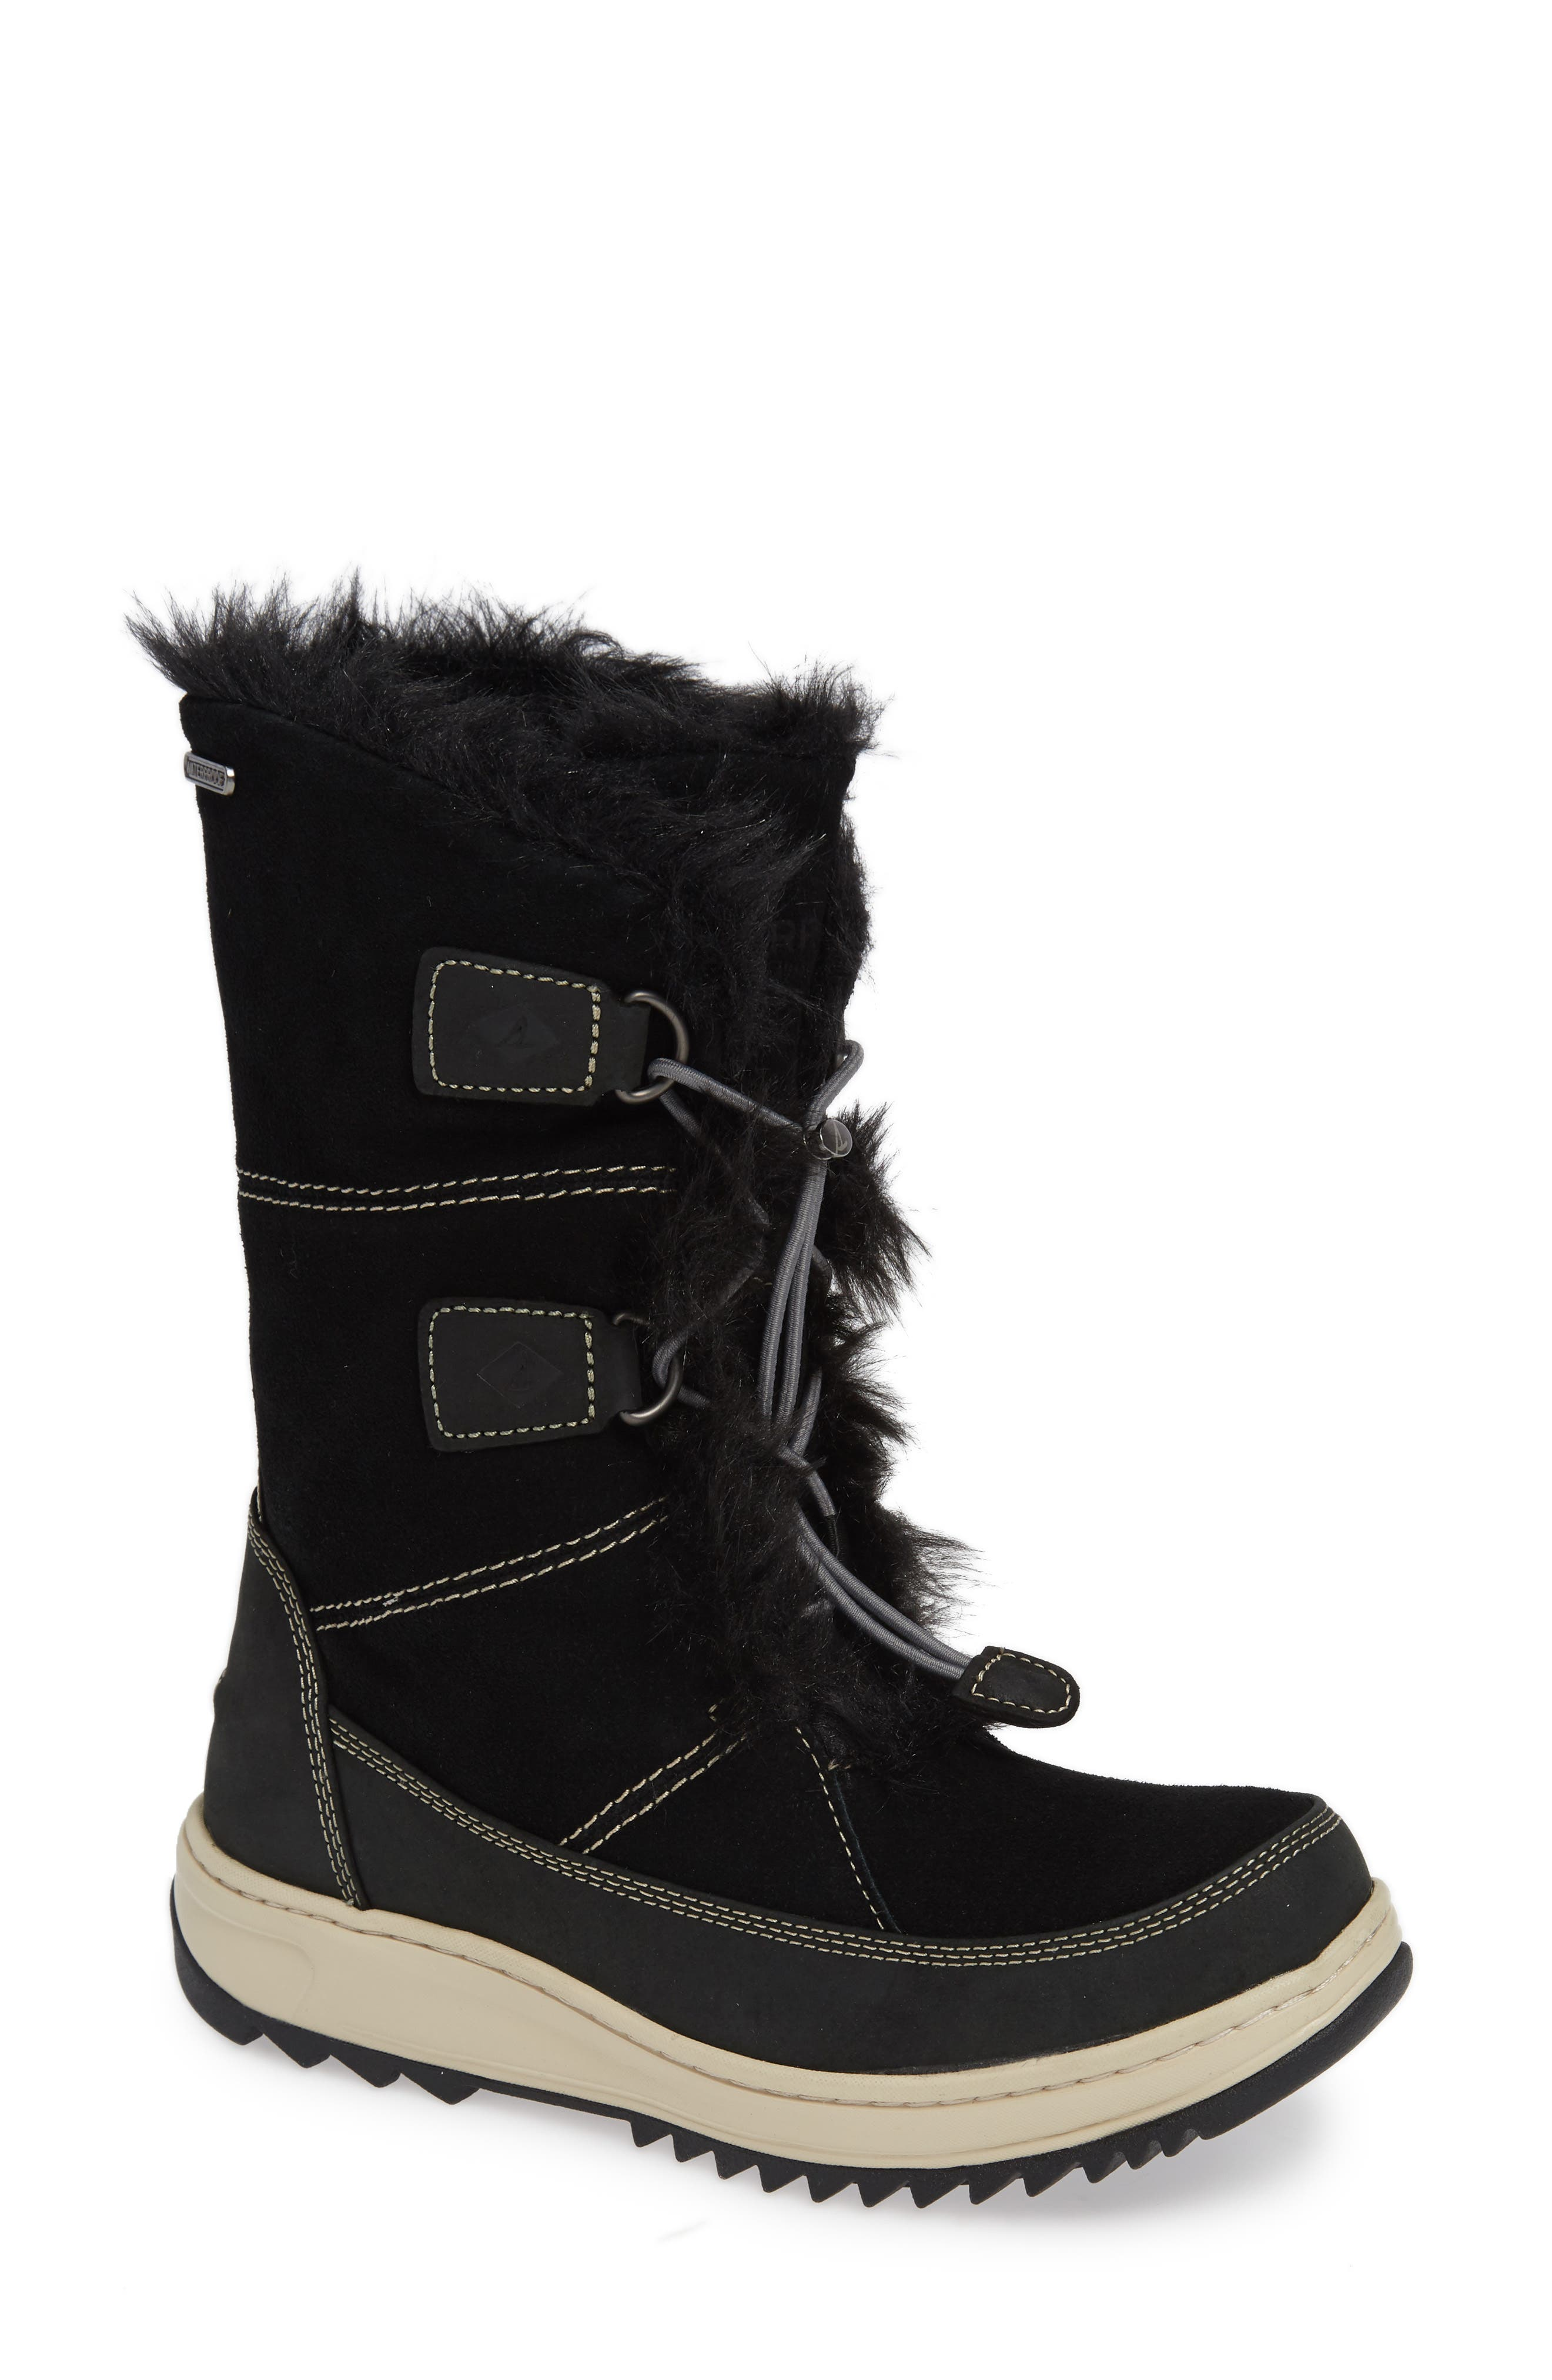 SPERRY Powder Valley Vibram<sup>®</sup> Arctic Grip Waterproof Boot, Main, color, 001